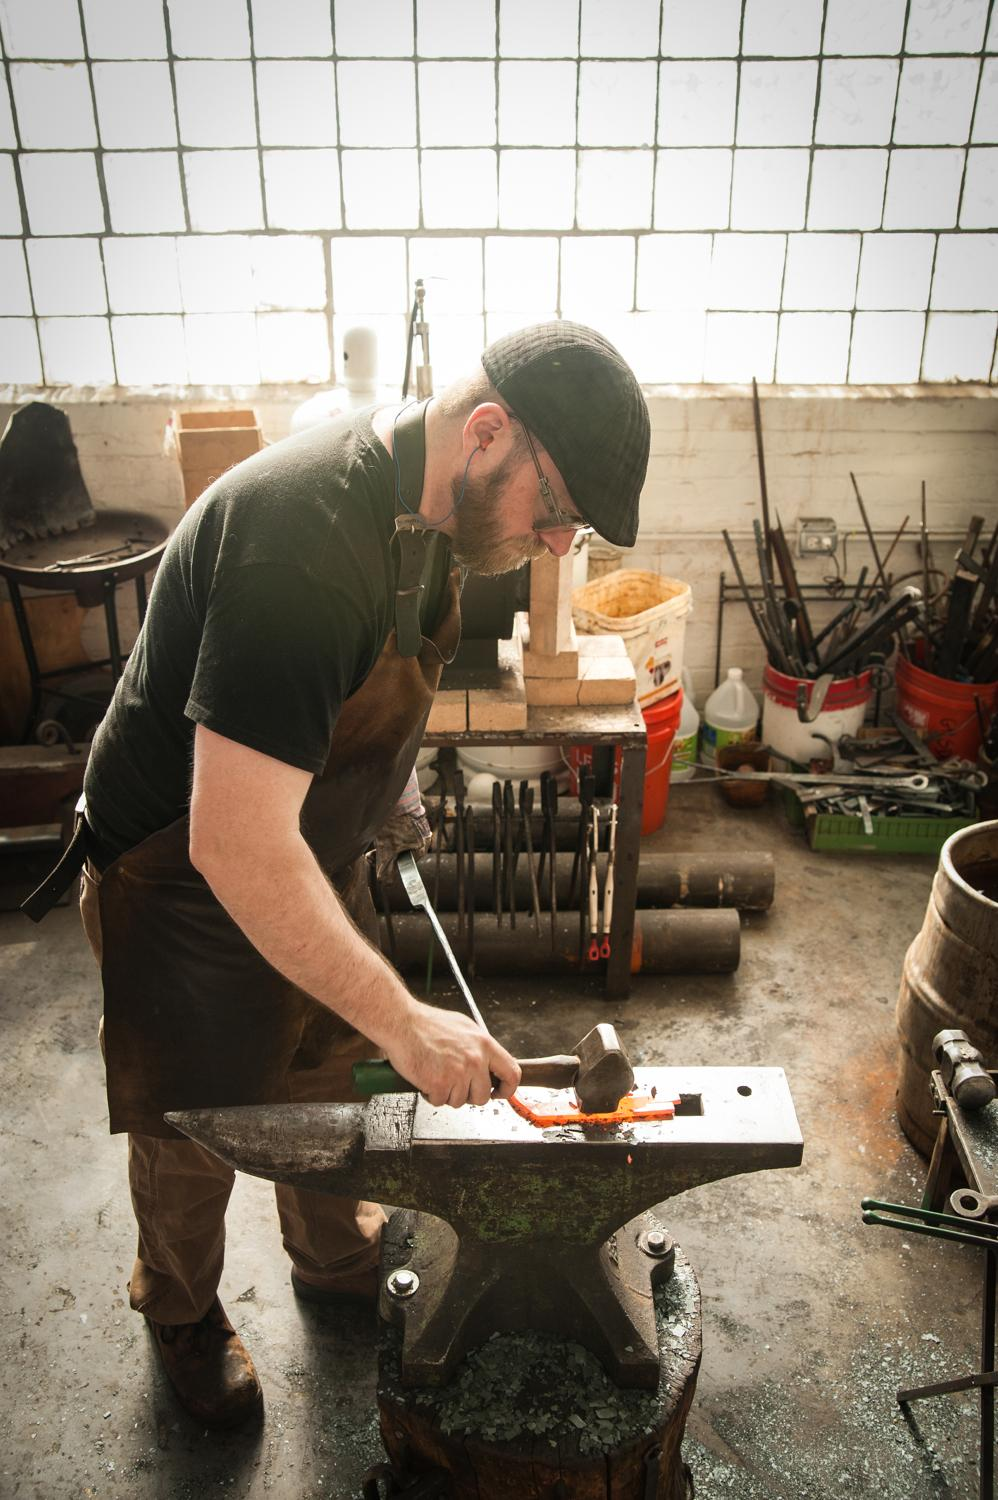 Mark Gilsdorf, Artist-Blacksmith, works in his studio in the Essex Studios building in Walnut Hills. / Image: Melissa Doss Sliney